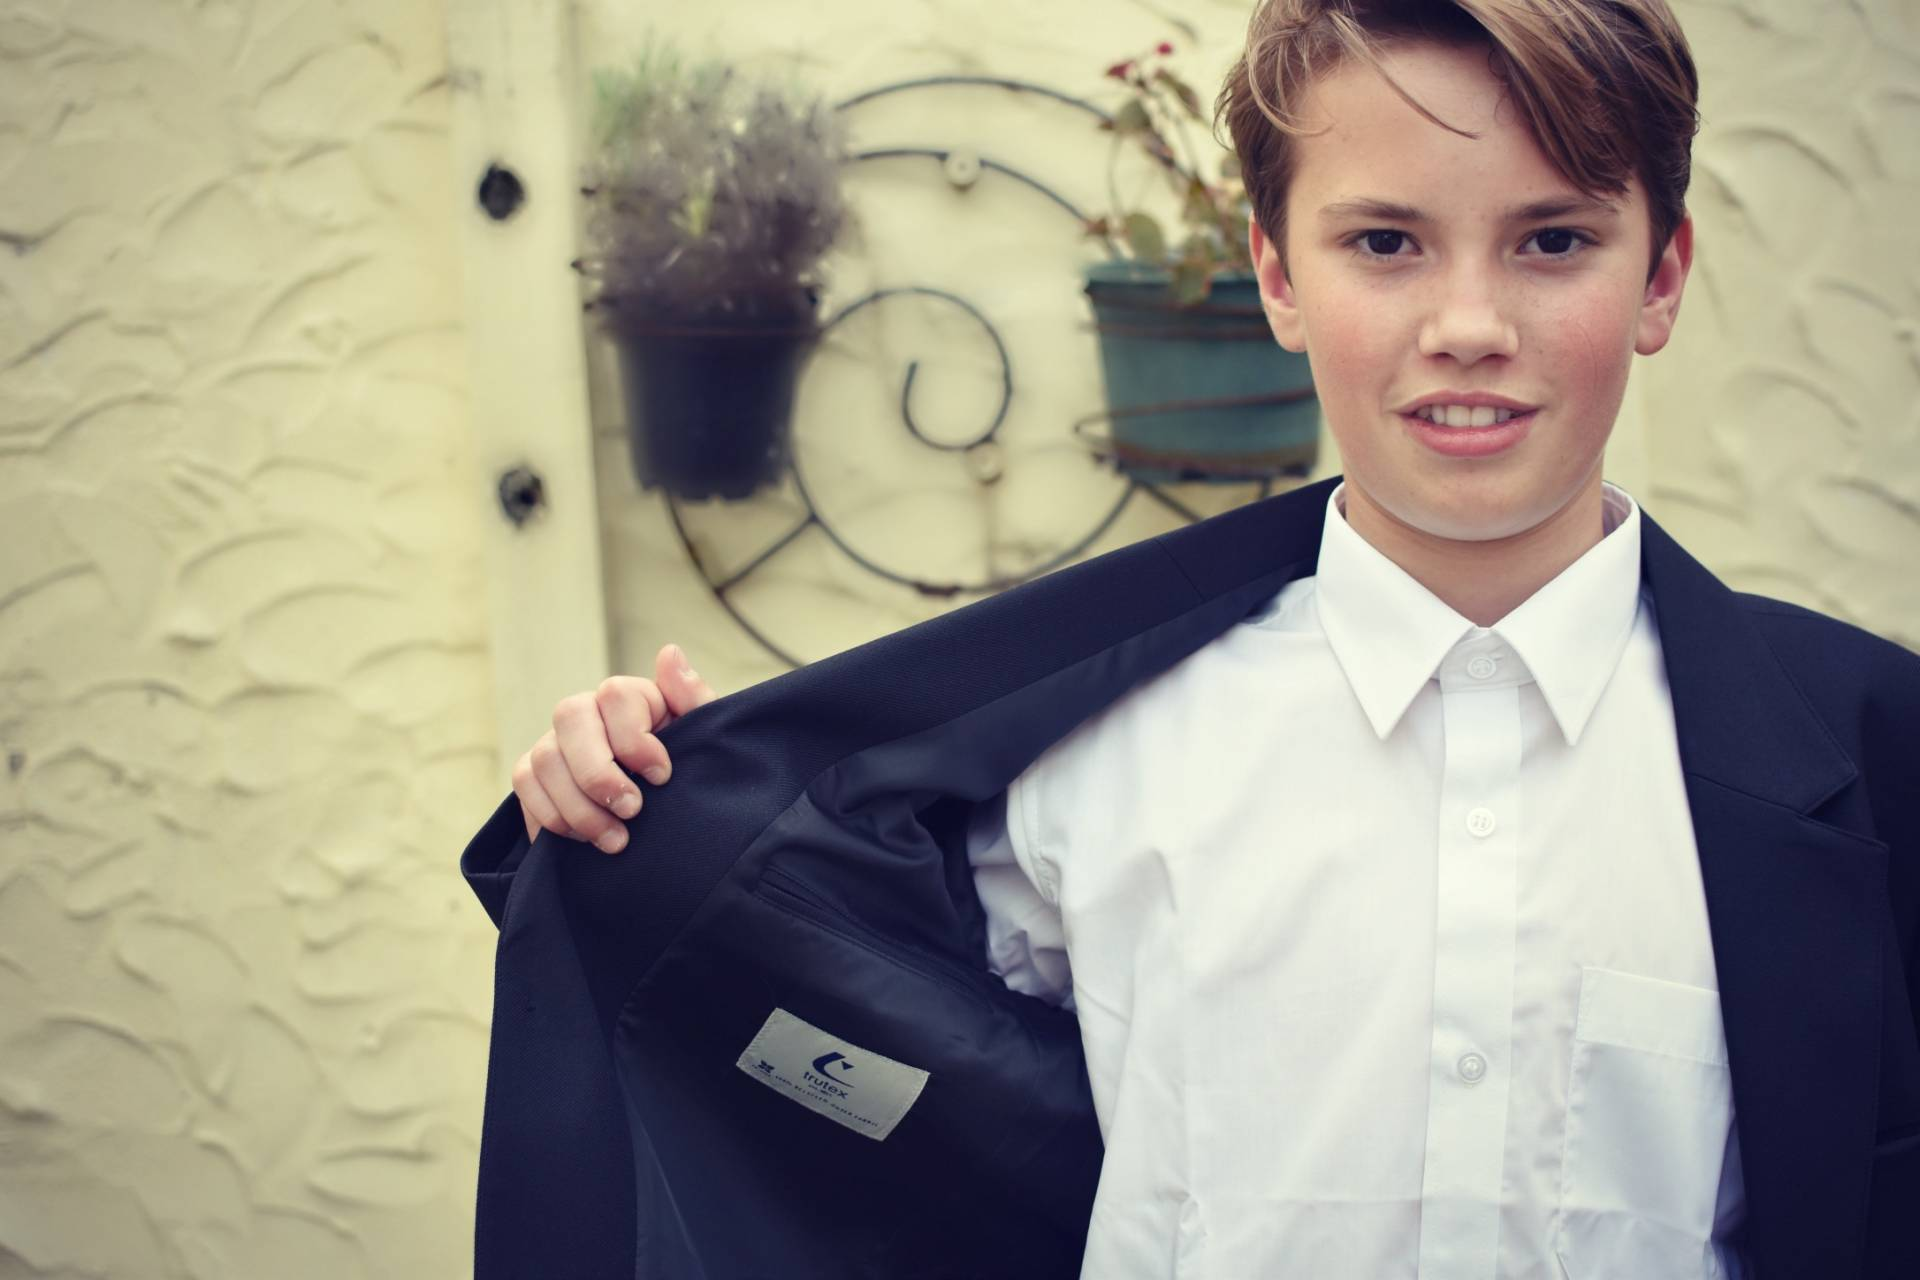 reviewing the Trutex range of kids school uniform, ready for the next new term